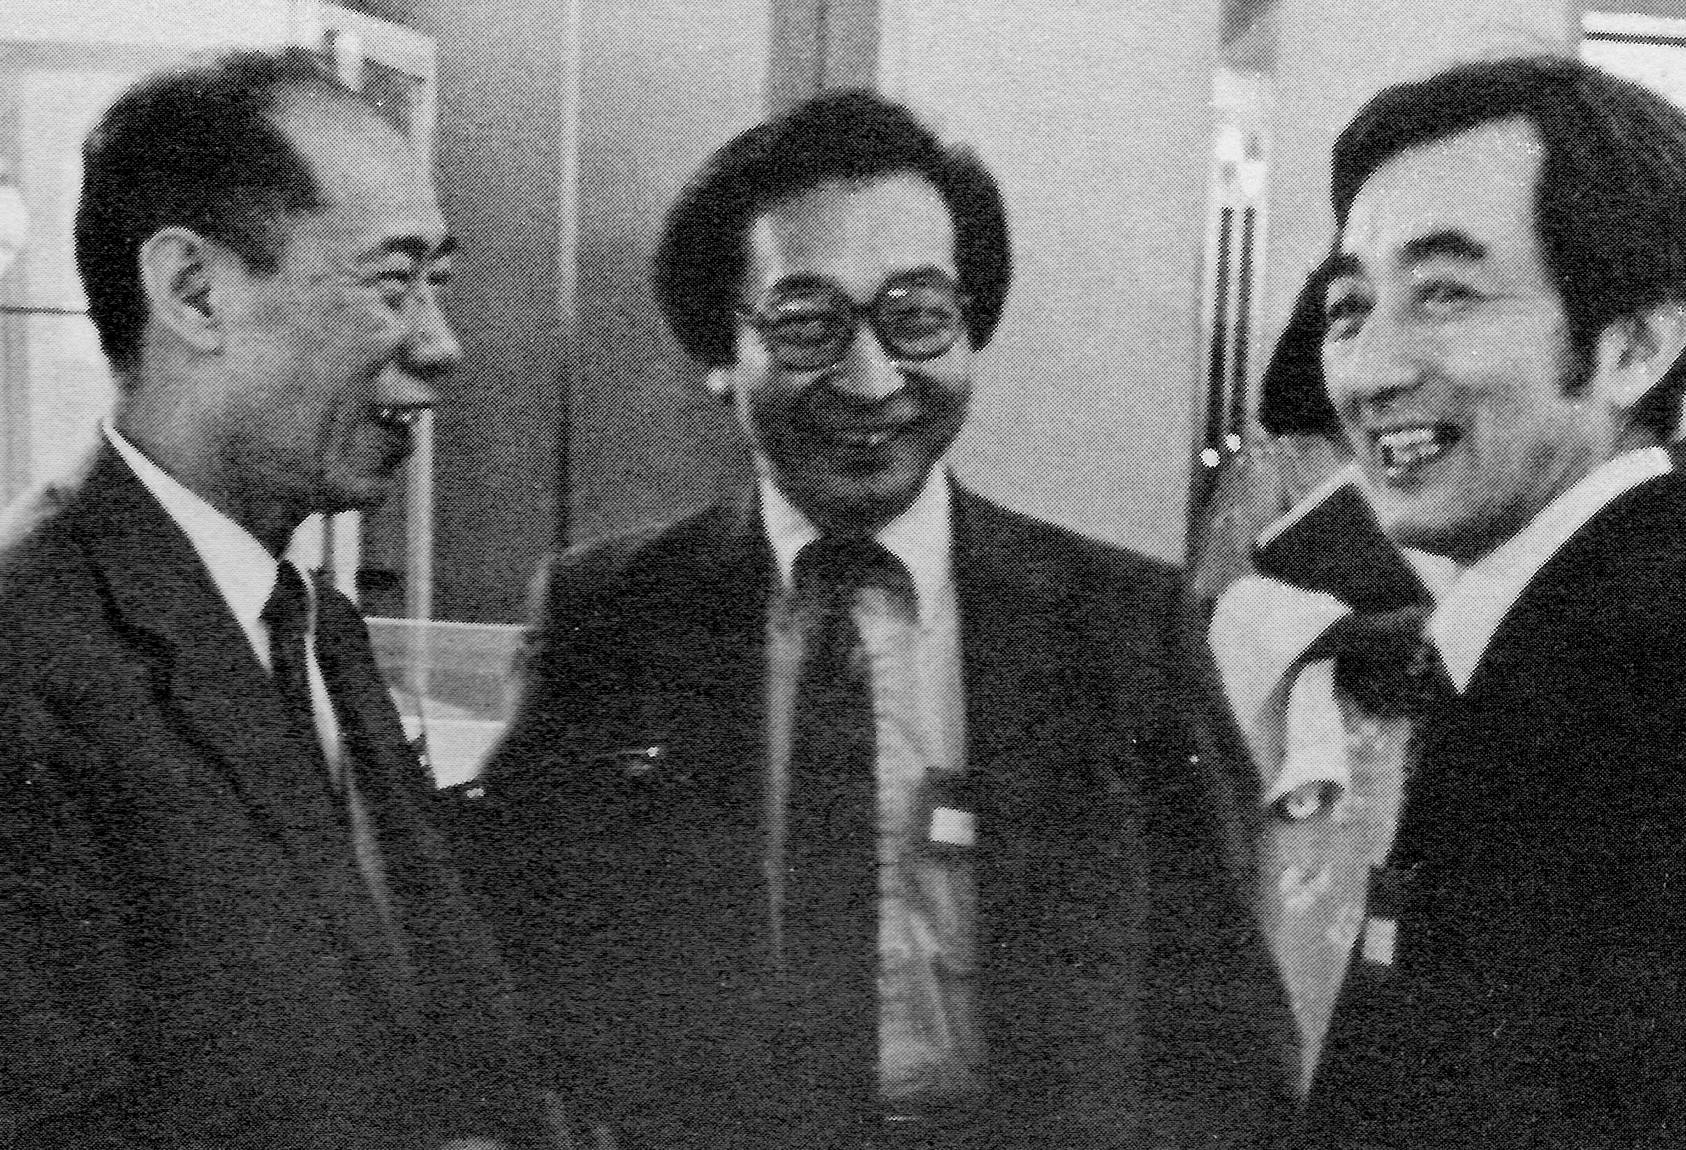 Chou Wen-chung (center) with Li Huanzhi, composer and vice chairman of the Chinese Musicians Association and leader of the delegation from the PRC, and Hsu Tsang-houei, distinguished composer from Taiwan and head of the Taiwan contingent